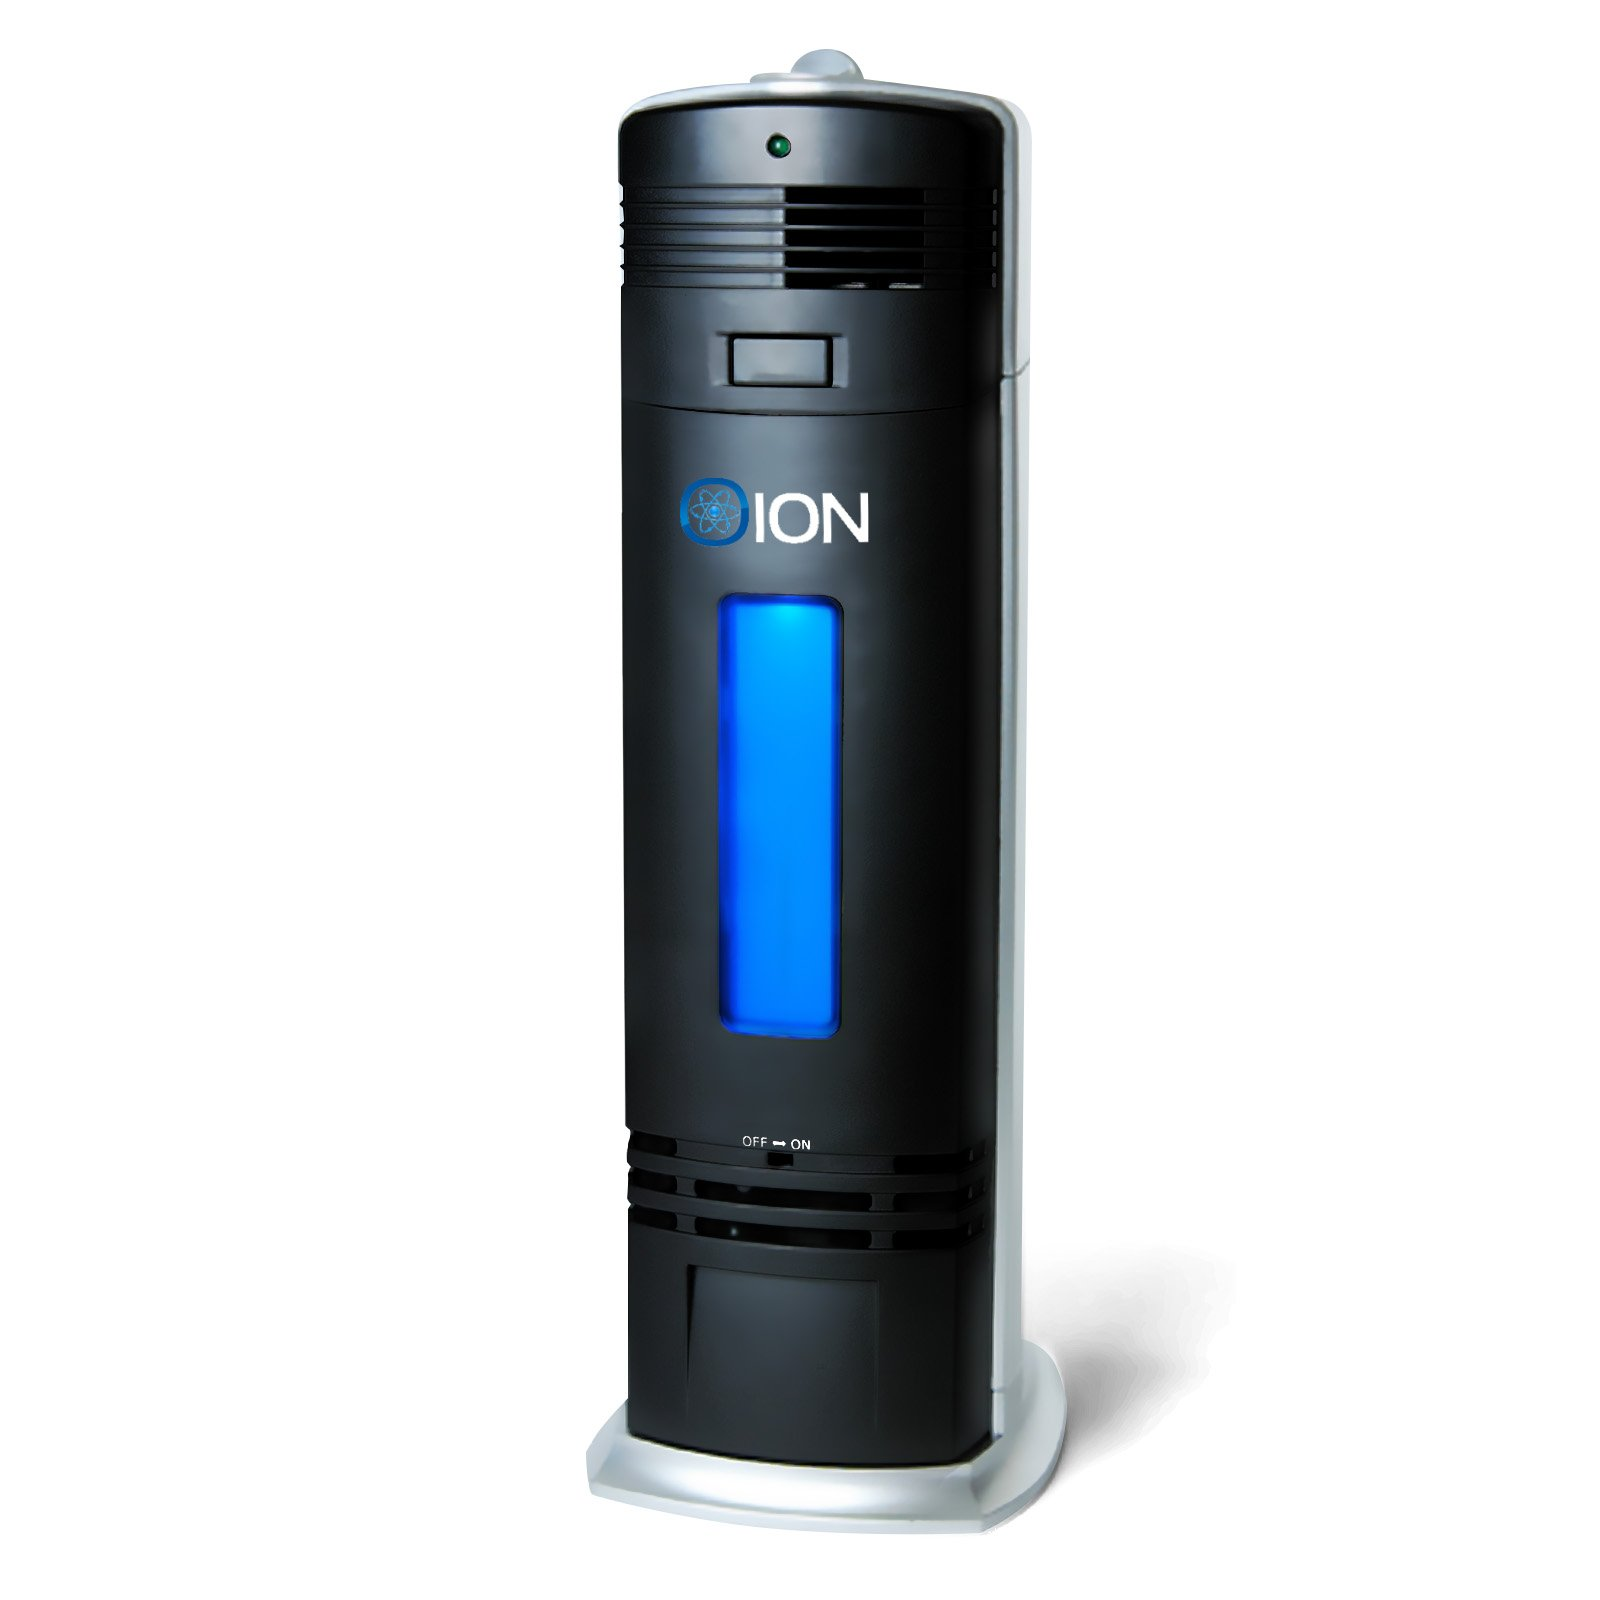 O Ion B 1000 Permanent Filter Ionic Air Purifier Pro